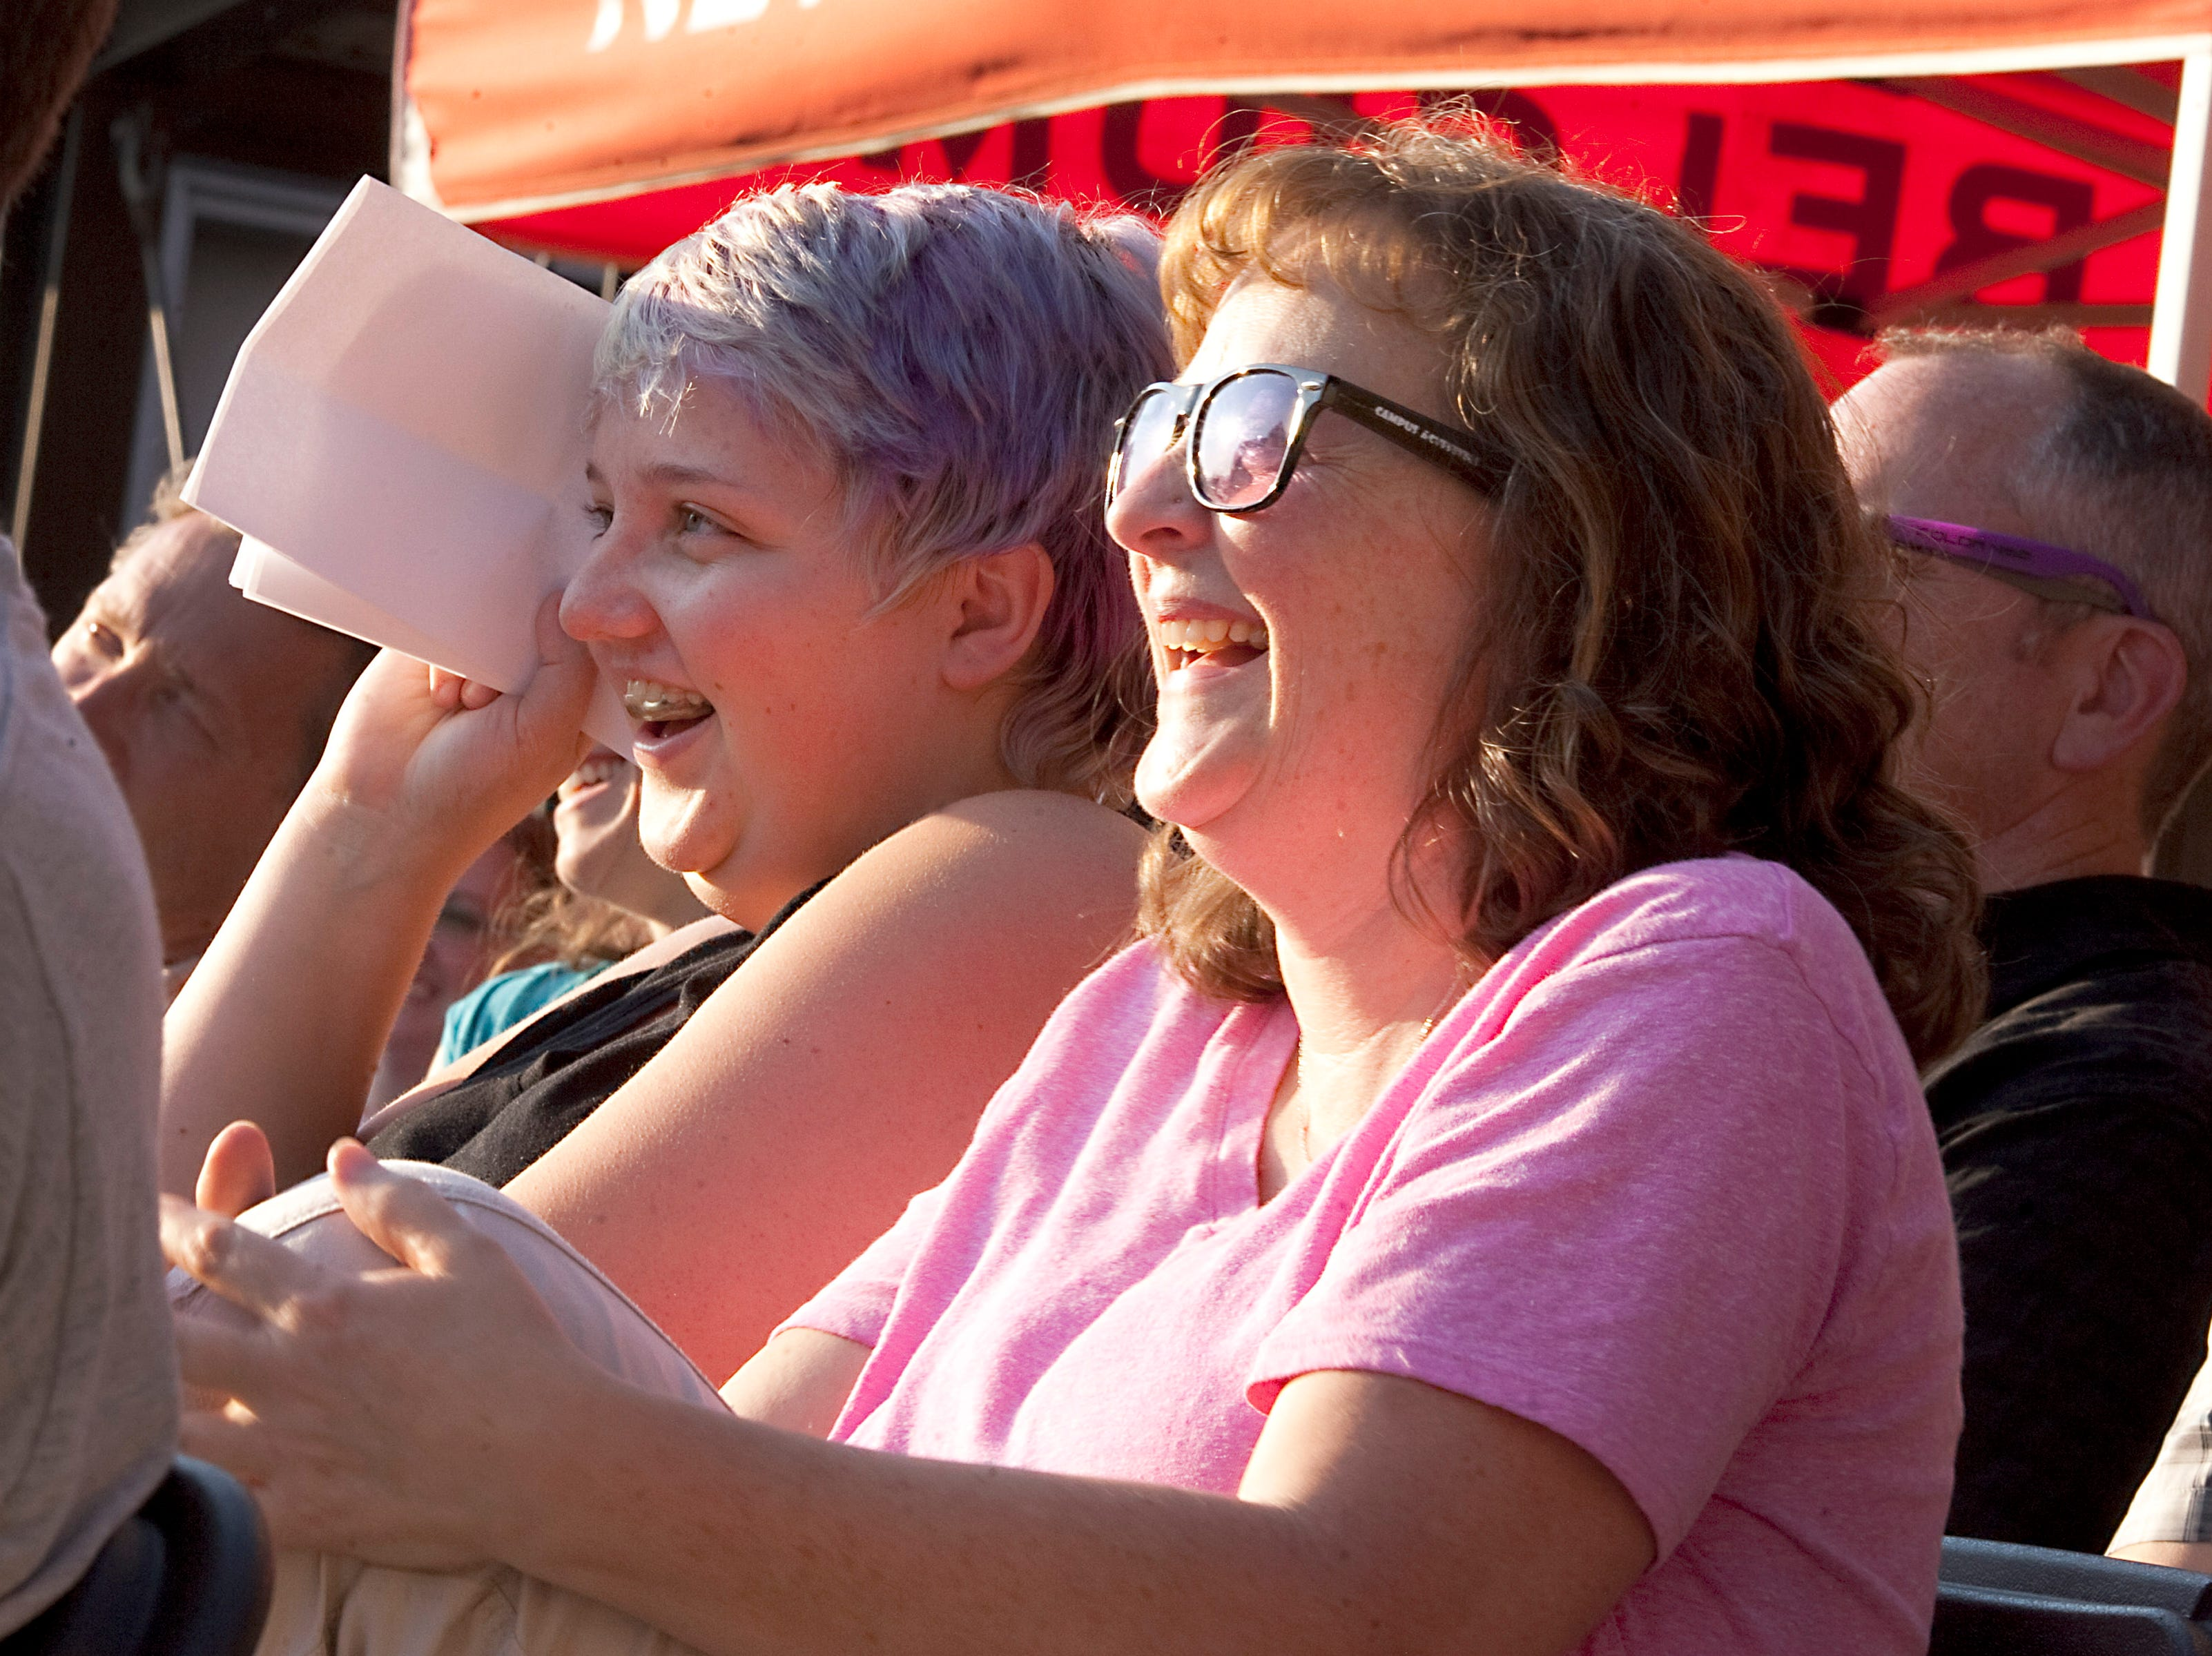 Storyteller Charles Kaine's family members, from left, daughter, Madison, and wife, Karey, laugh hysterically during Kaine's story during the Coloradoan Storytellers Project held at Wolverine Farm Letterpress & Publick House on Wednesday, Aug. 8, 2018.